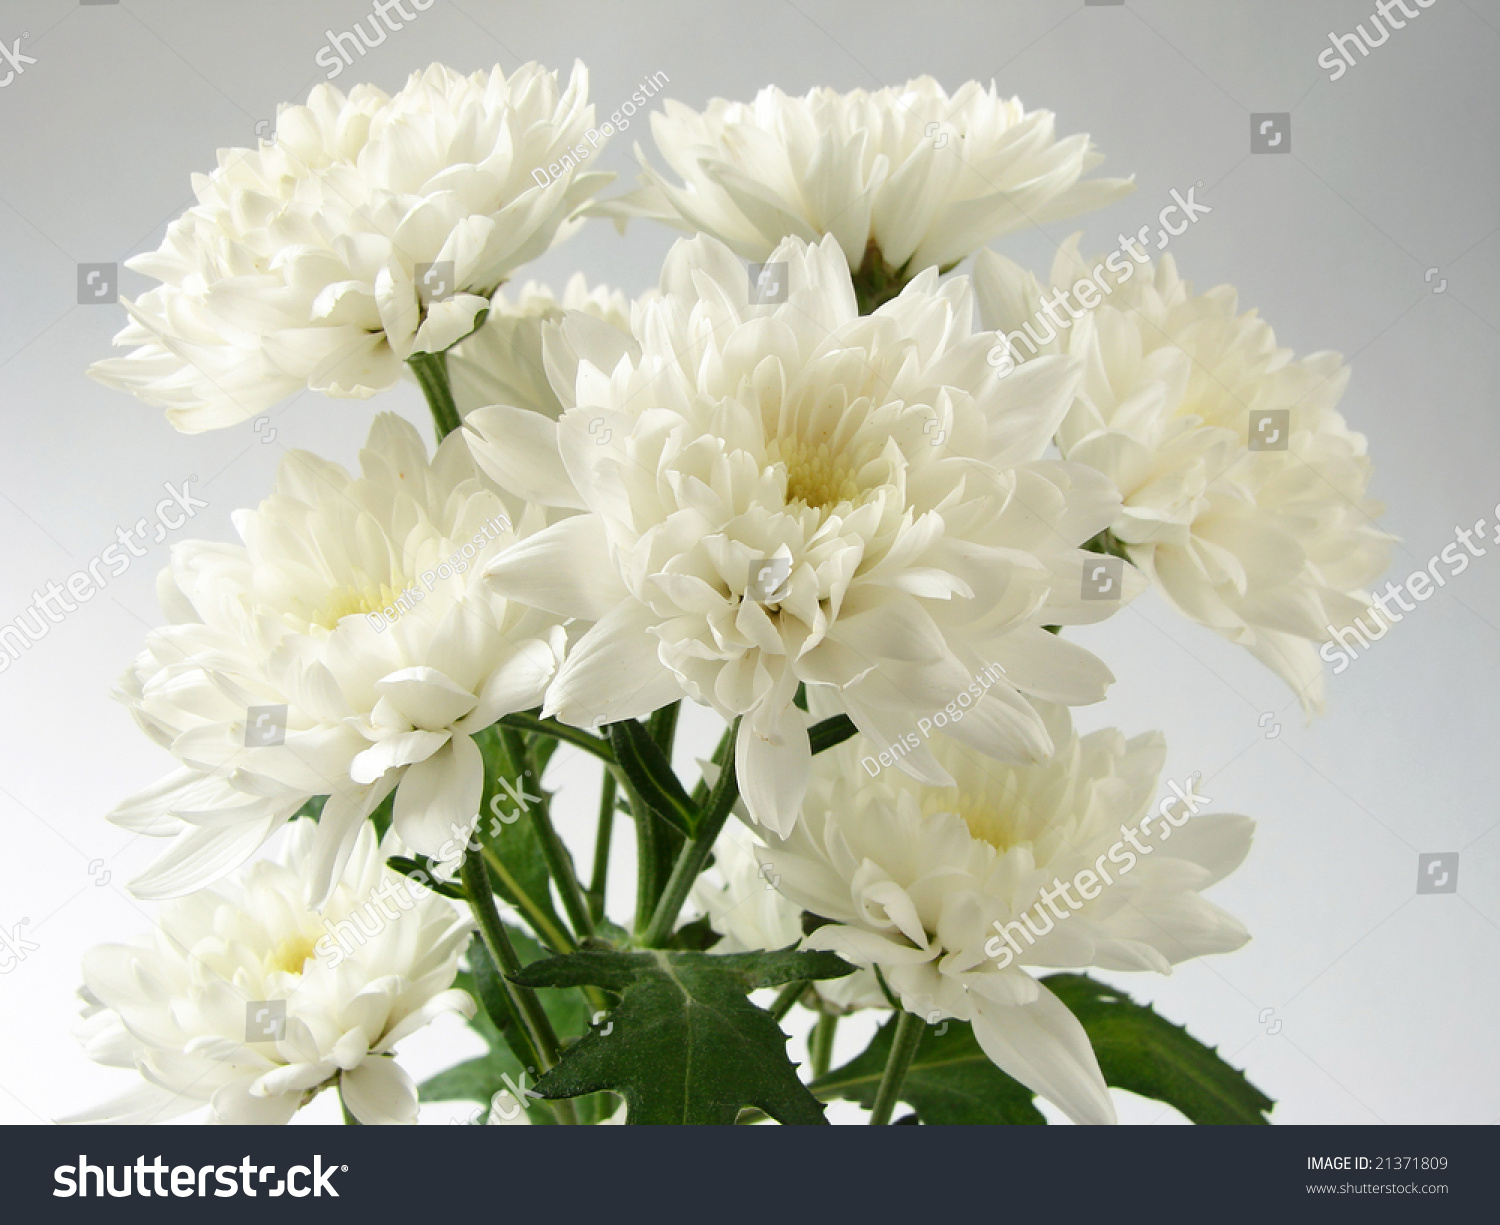 white chrysanthemums bouquet stock photo   shutterstock, Beautiful flower